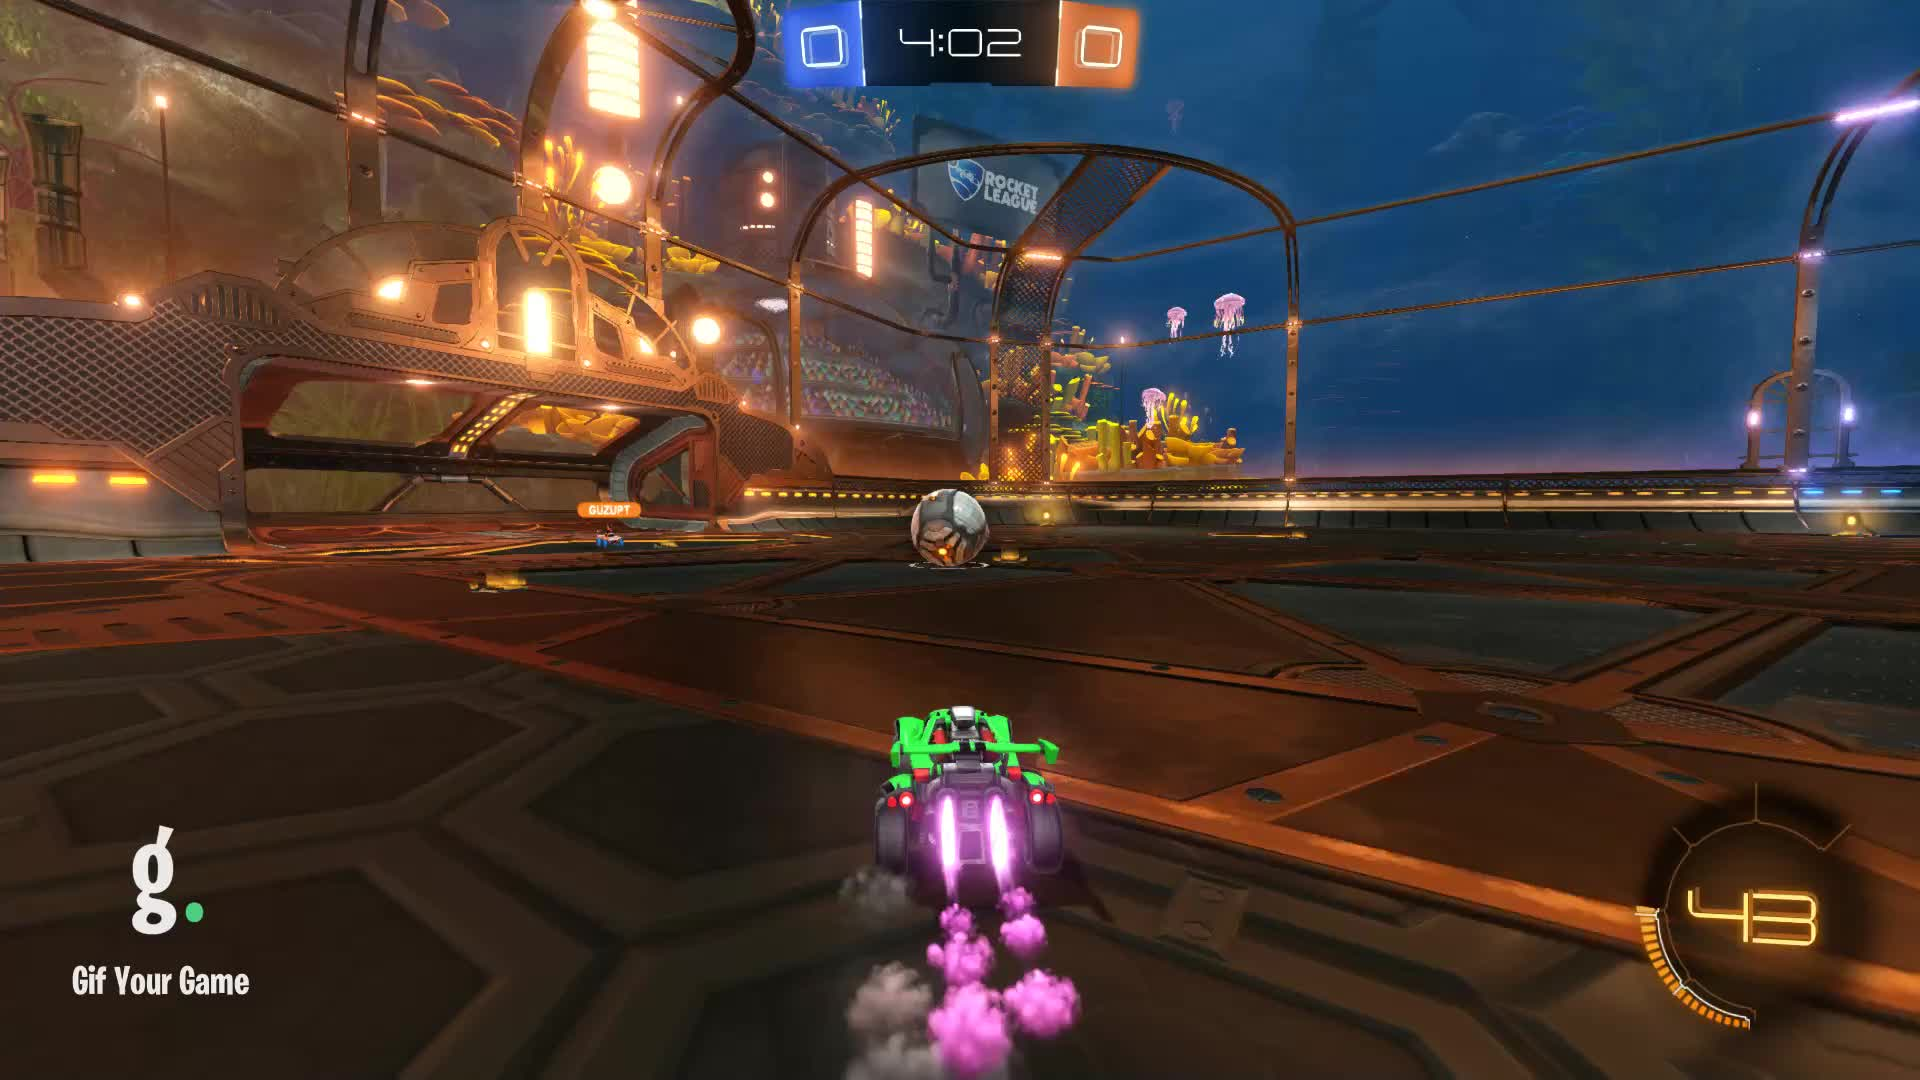 Gif Your Game, GifYourGame, Goal, Jor-L, Rocket League, RocketLeague, Goal 1: Jor-L GIFs